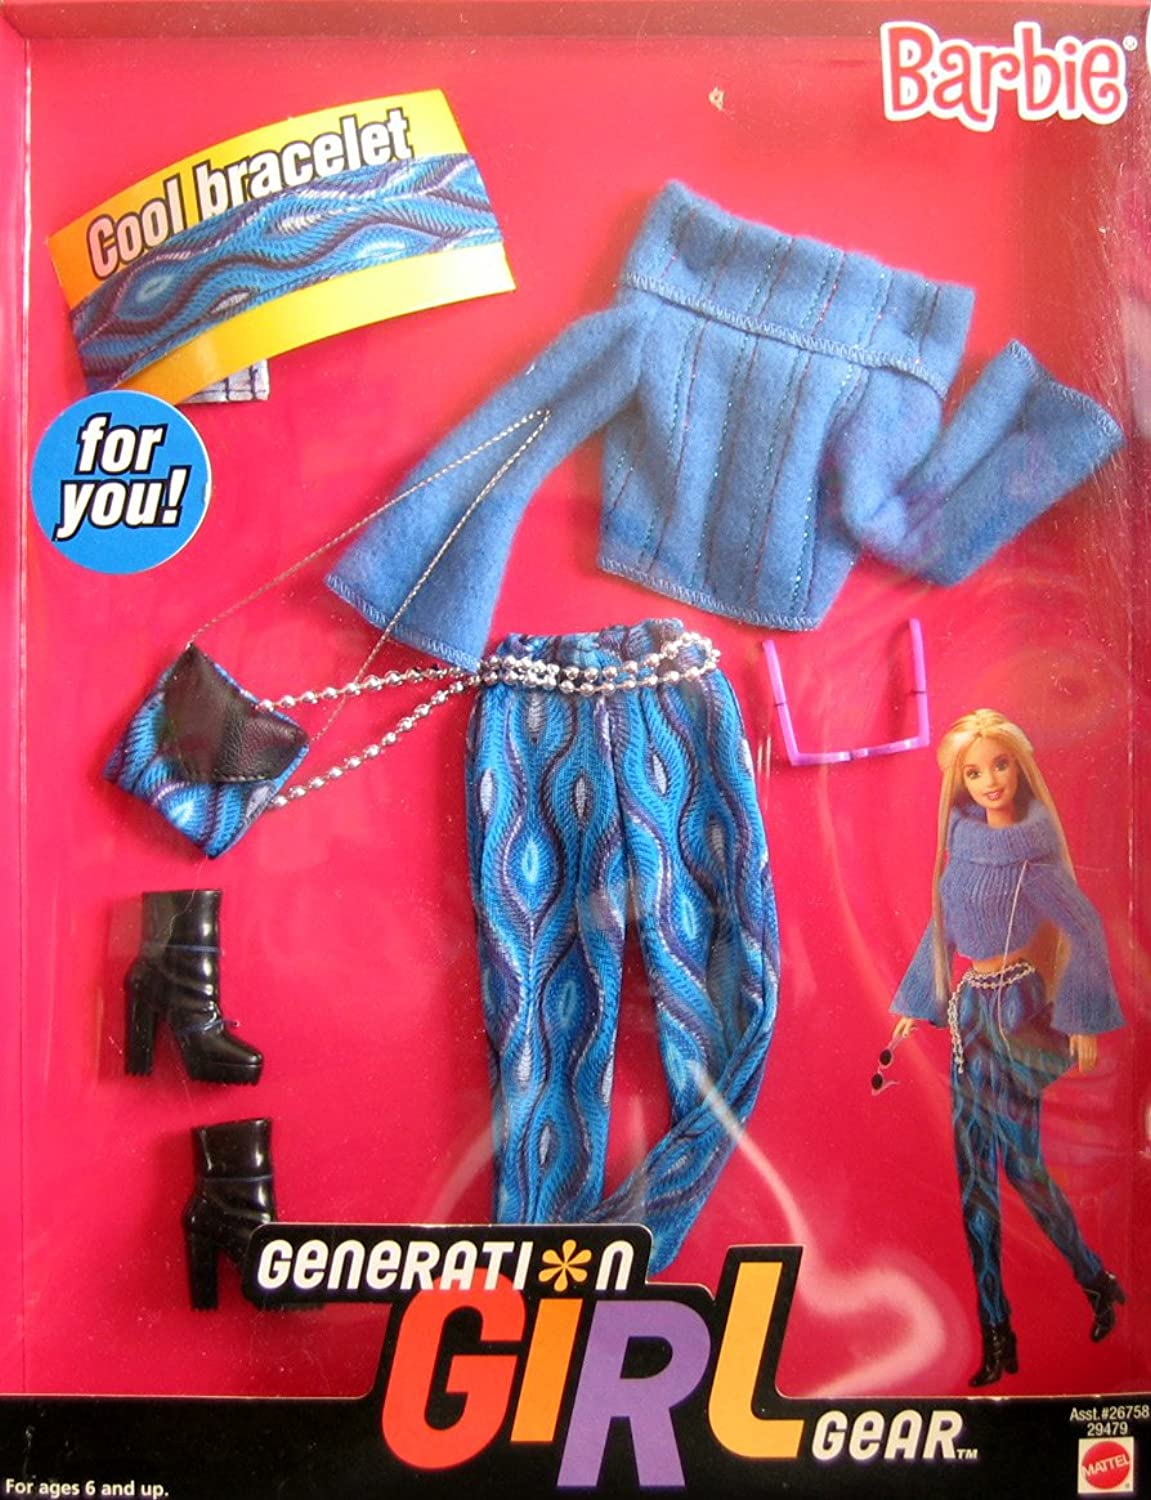 Barbie Generation Girl Gear Fashions w Cool Bracelet For YOU  (2000)